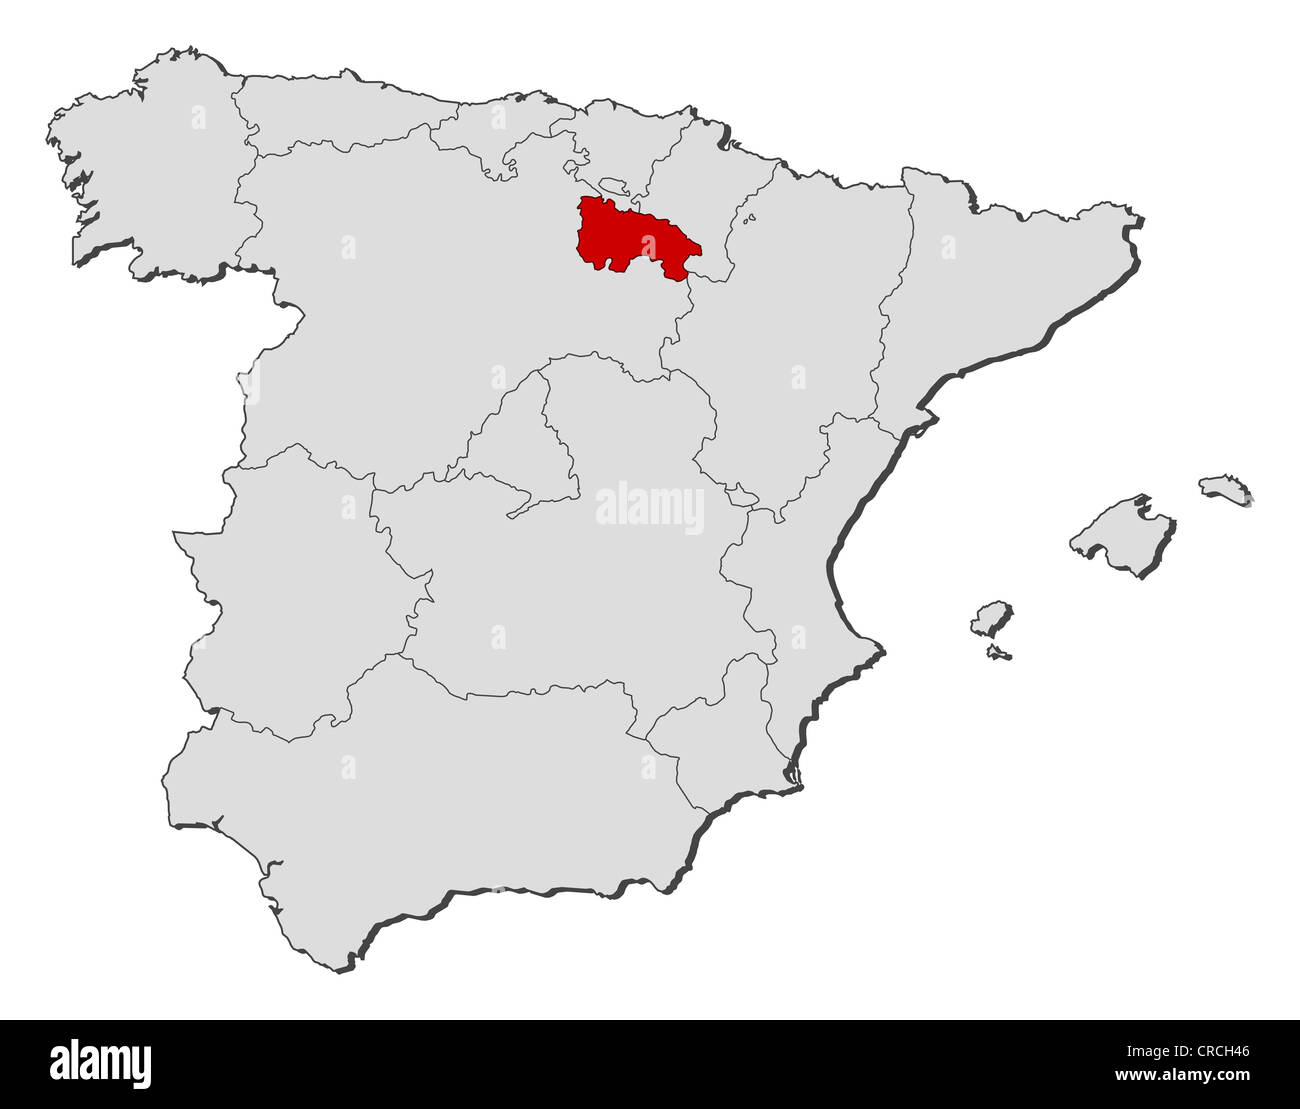 Map Of Spain Rioja.Political Map Of Spain With The Several Regions Where La Rioja Is